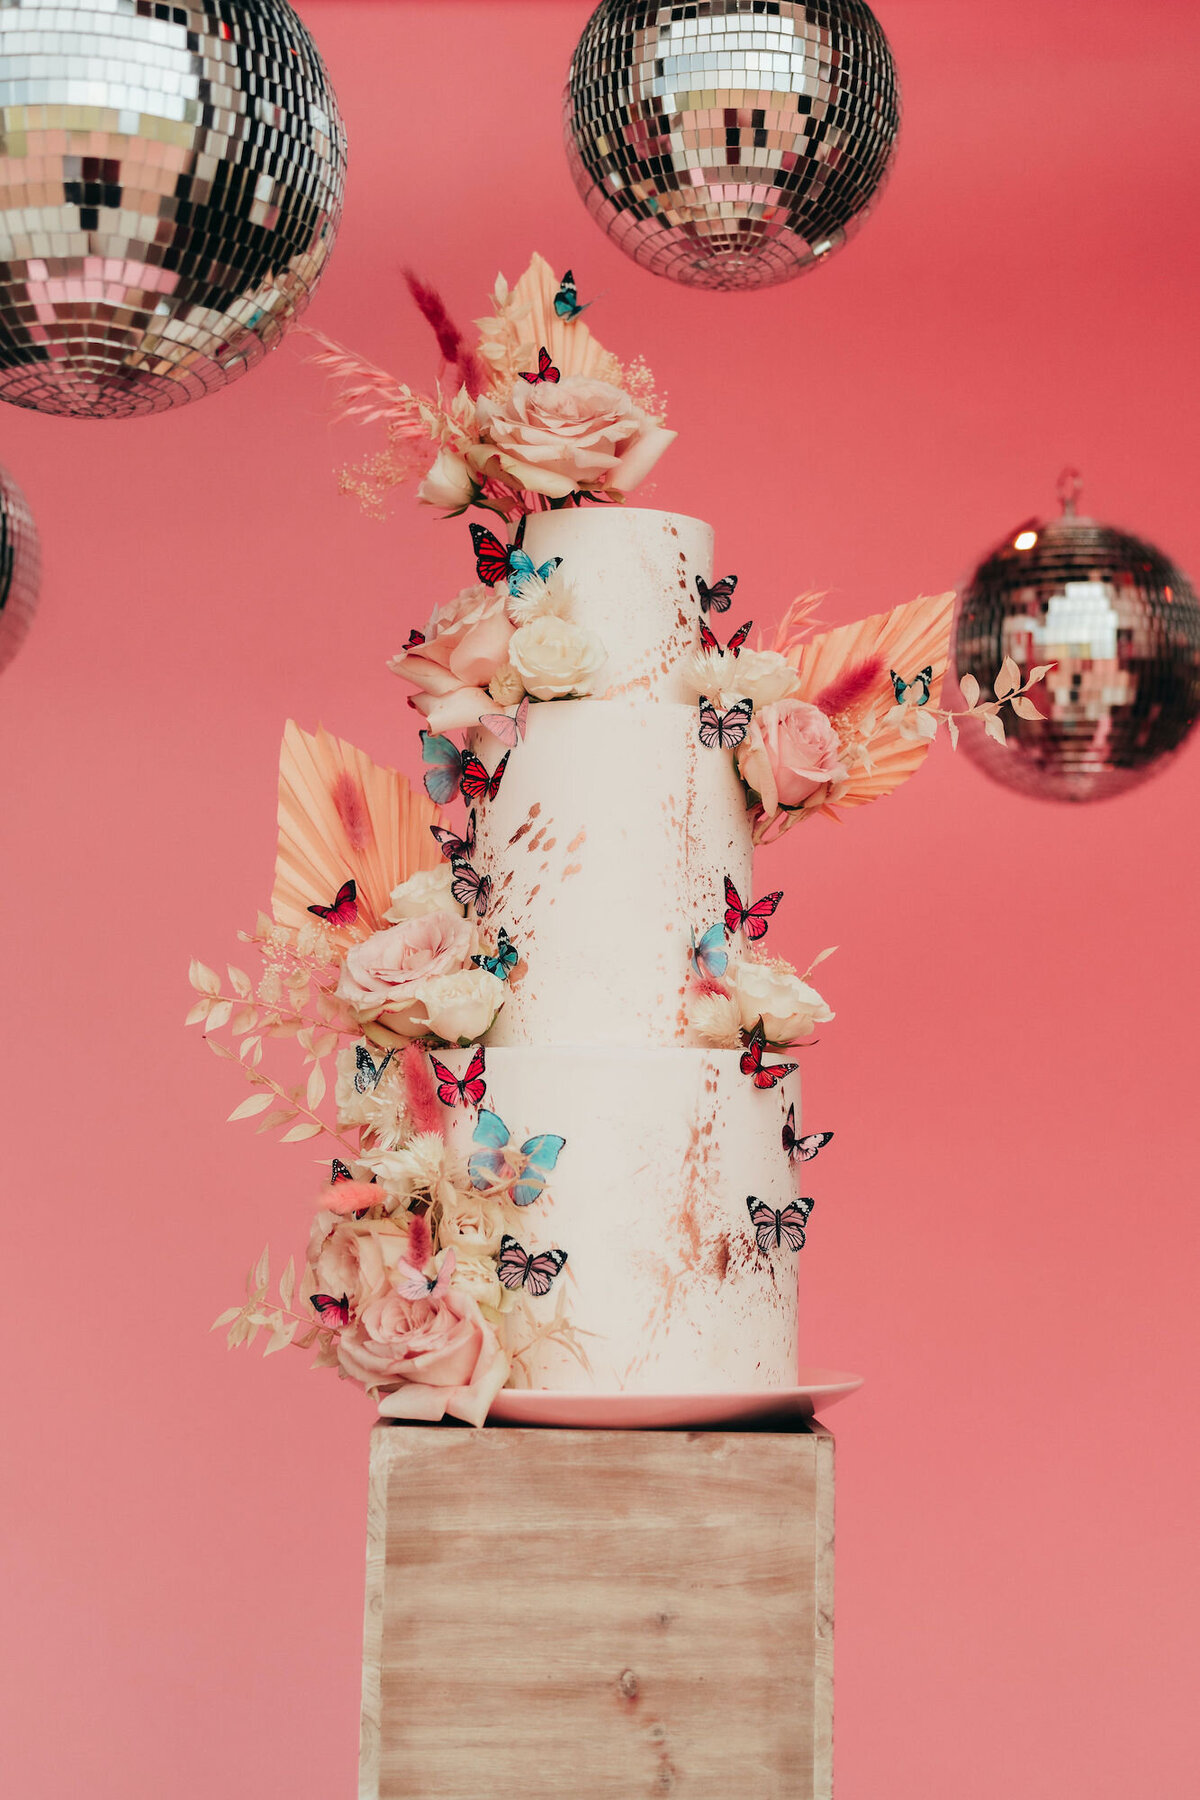 wedding cake decorated with florals and butterflies